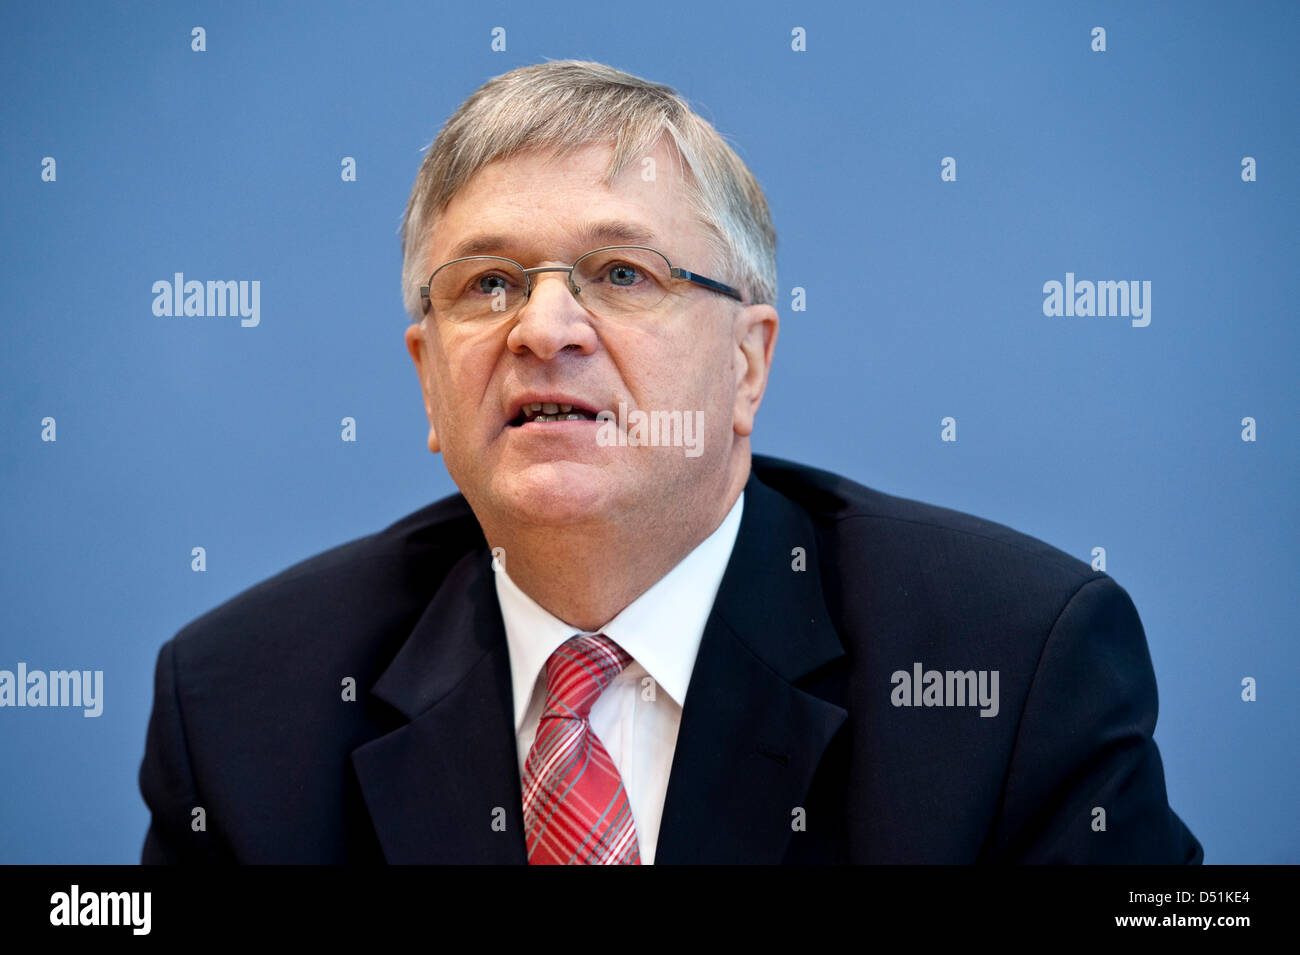 Parliamentary state secretary at the Ministry of Economy Peter Hintze speaks at a press conference concerning the - Stock Image